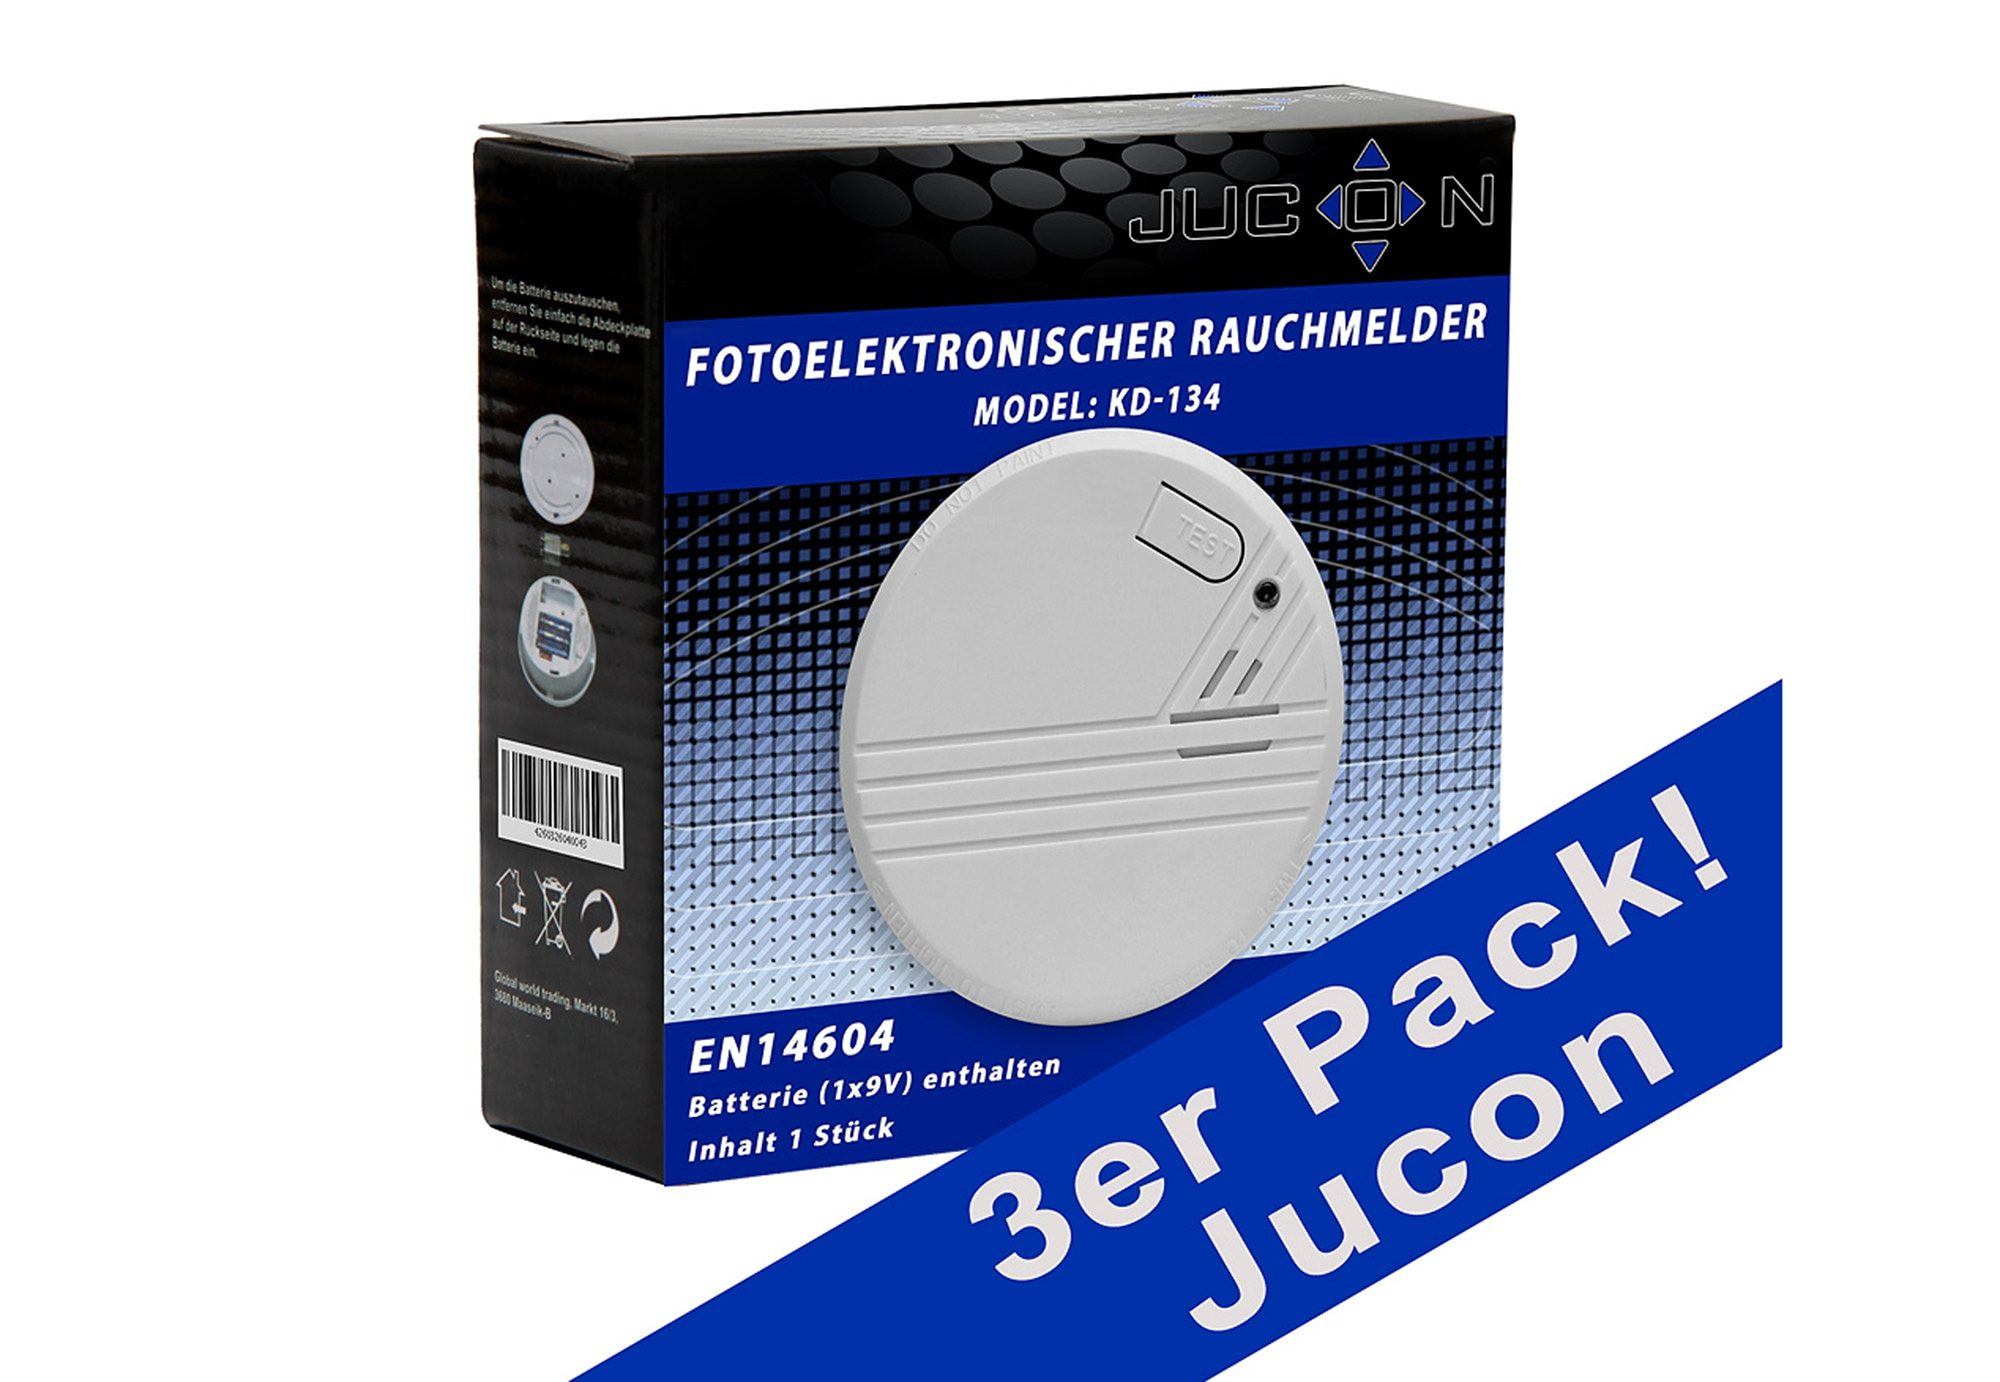 Rauchmelder, Jucon (3er Set)